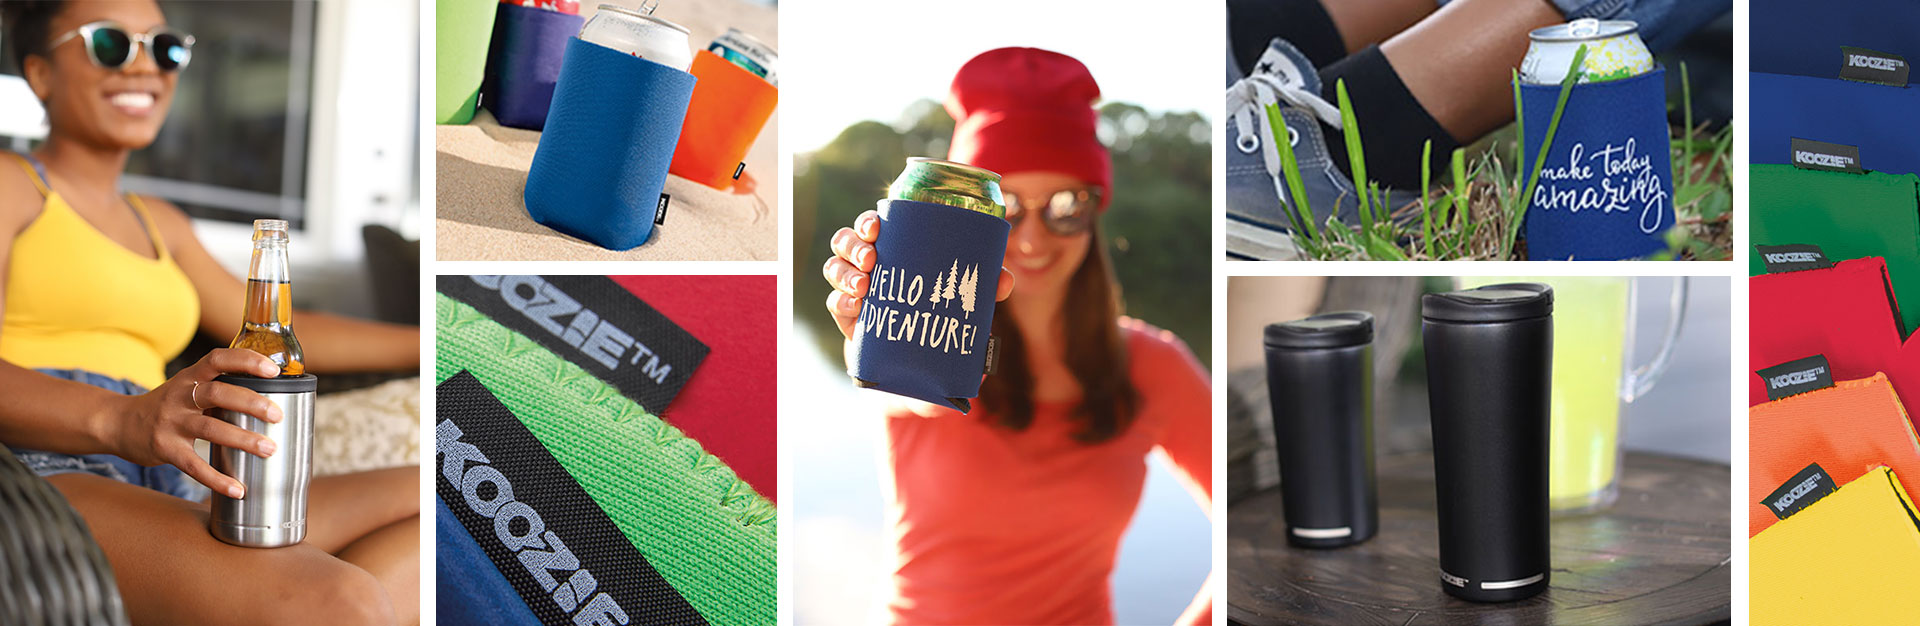 About Us Koozie® images